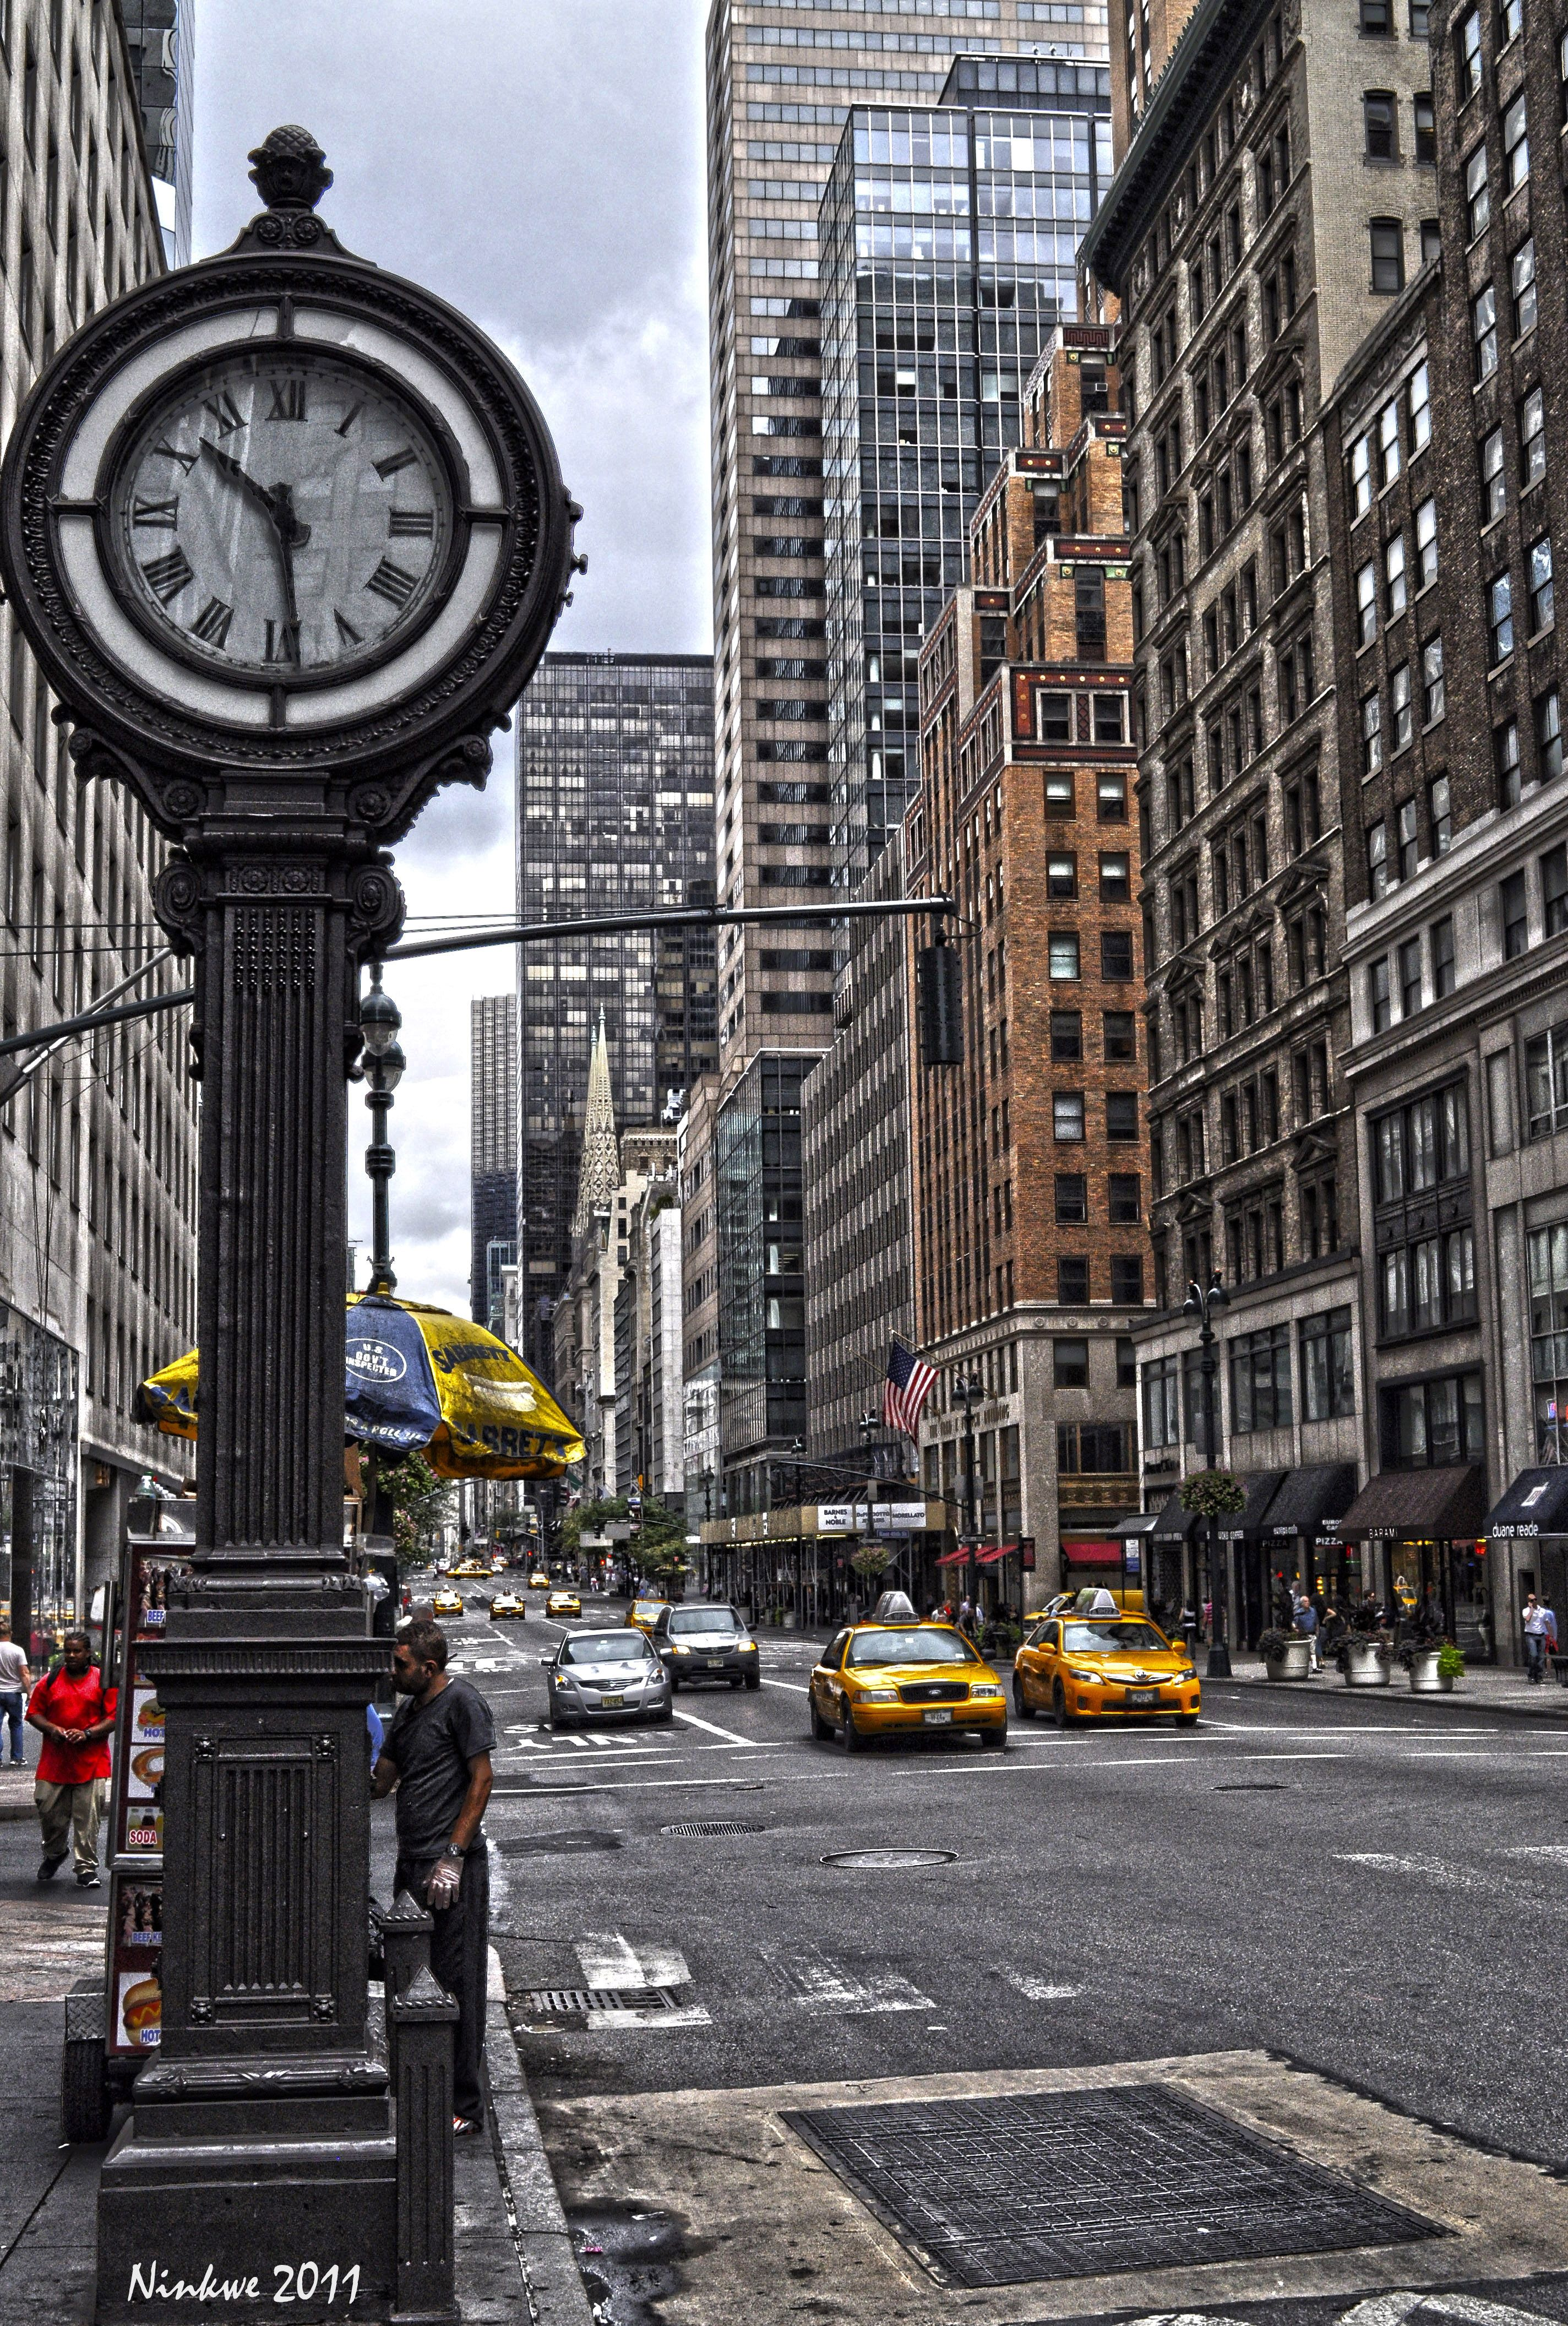 NYC. Street Clock at 522 Fifth Avenue & West 44th Street, Manhattan. Love to go back to NYC!